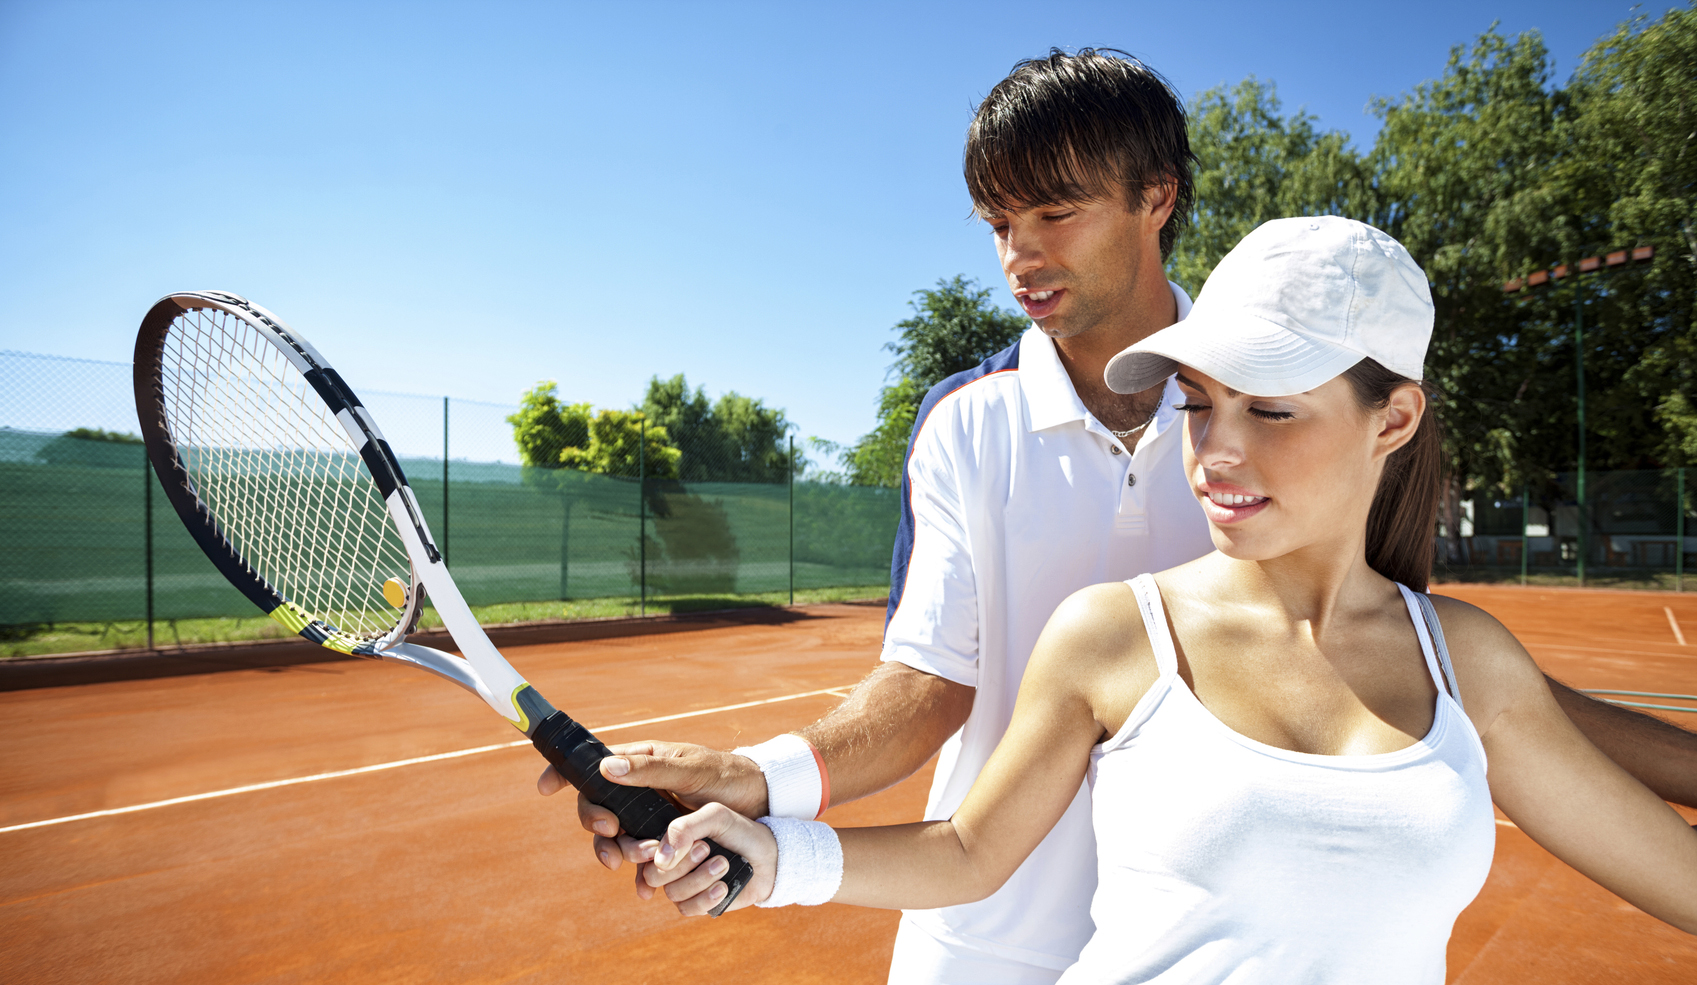 Trainer teaching a female how to play tennis